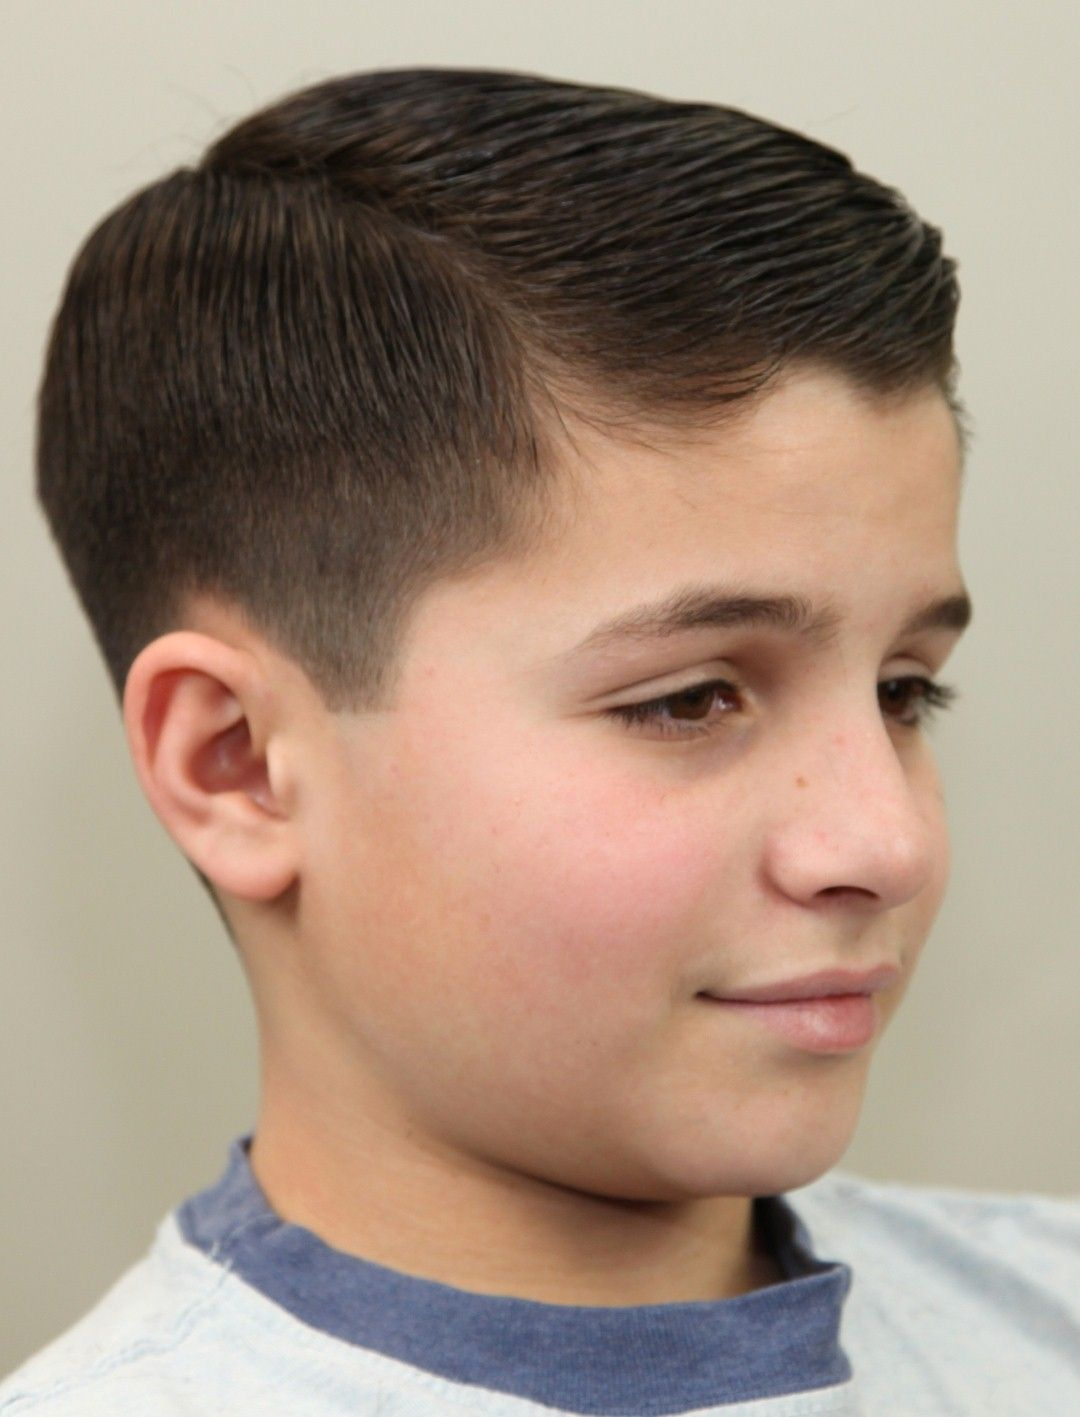 Pictures Of Boys Kids Hairstyles 2017